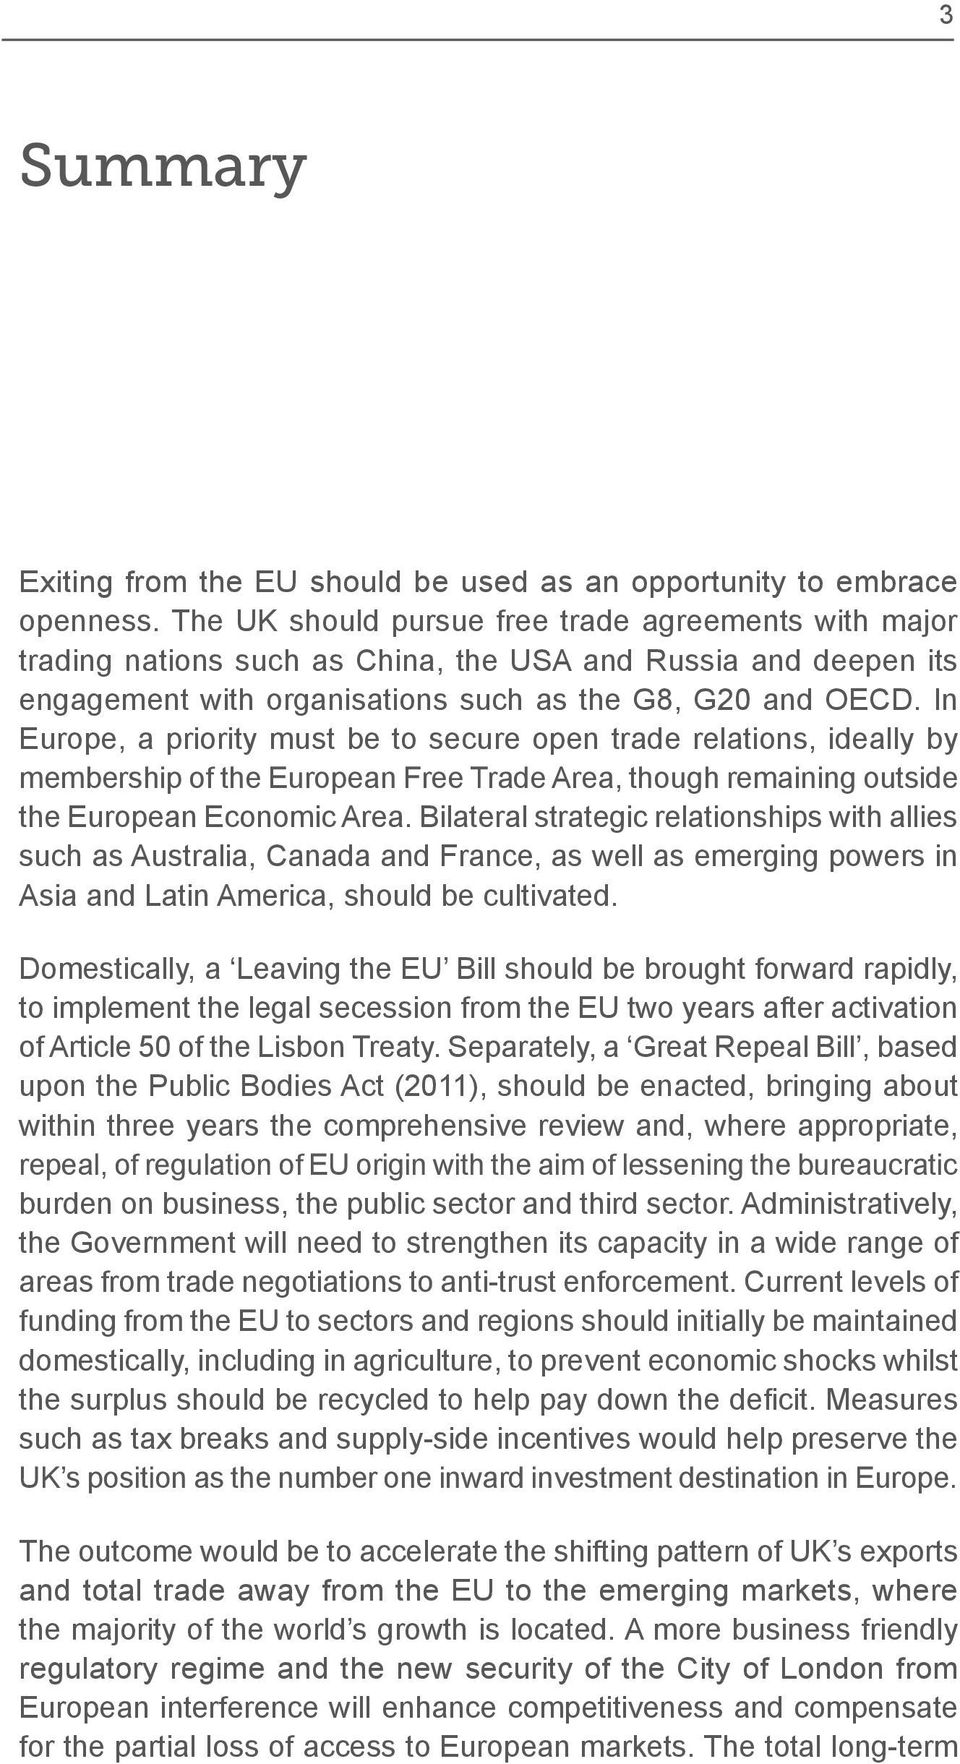 In Europe, a priority must be to secure open trade relations, ideally by membership of the European Free Trade Area, though remaining outside the European Economic Area.